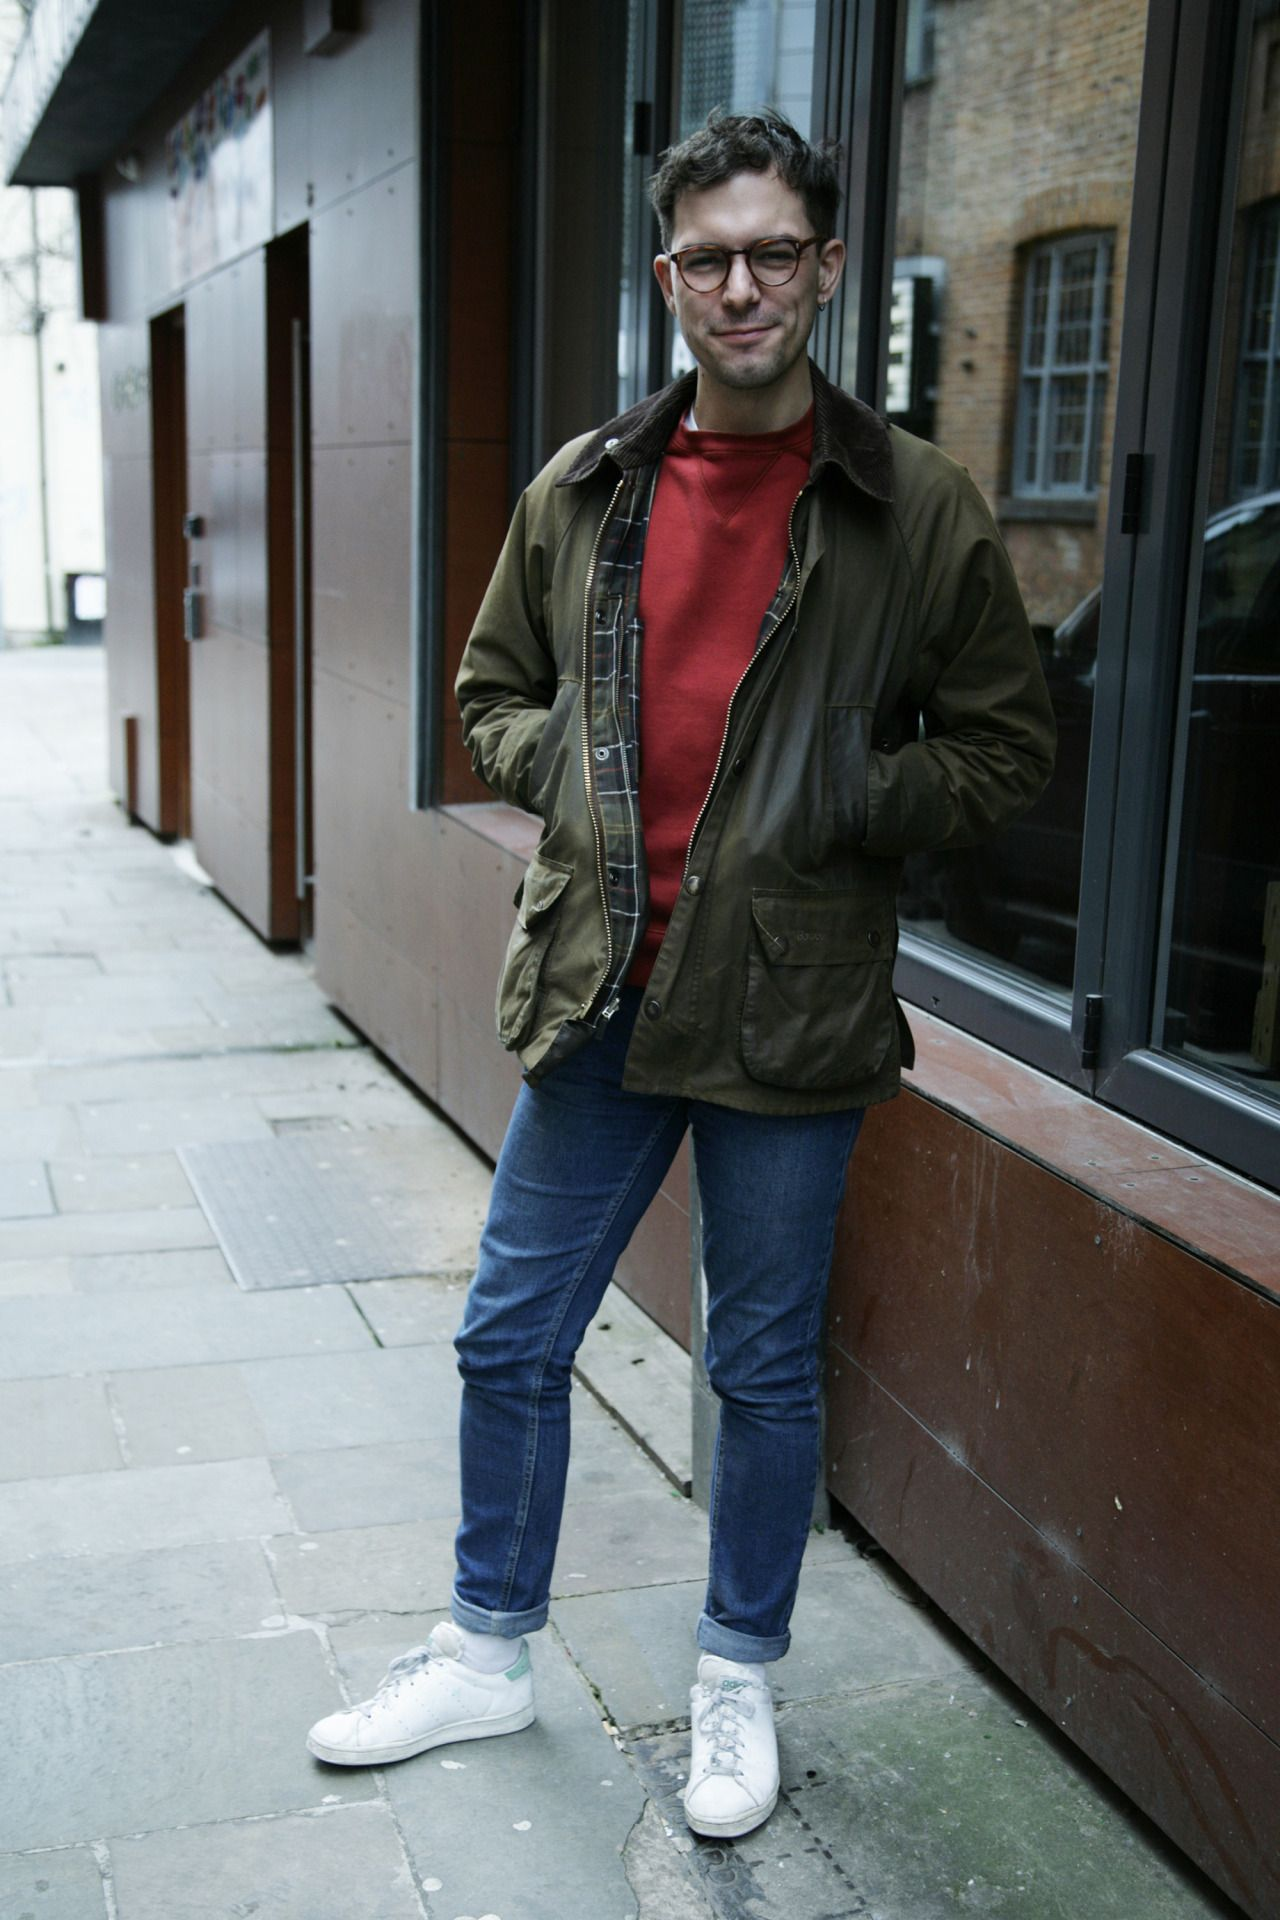 Barbour People | Barbour jacket outfit